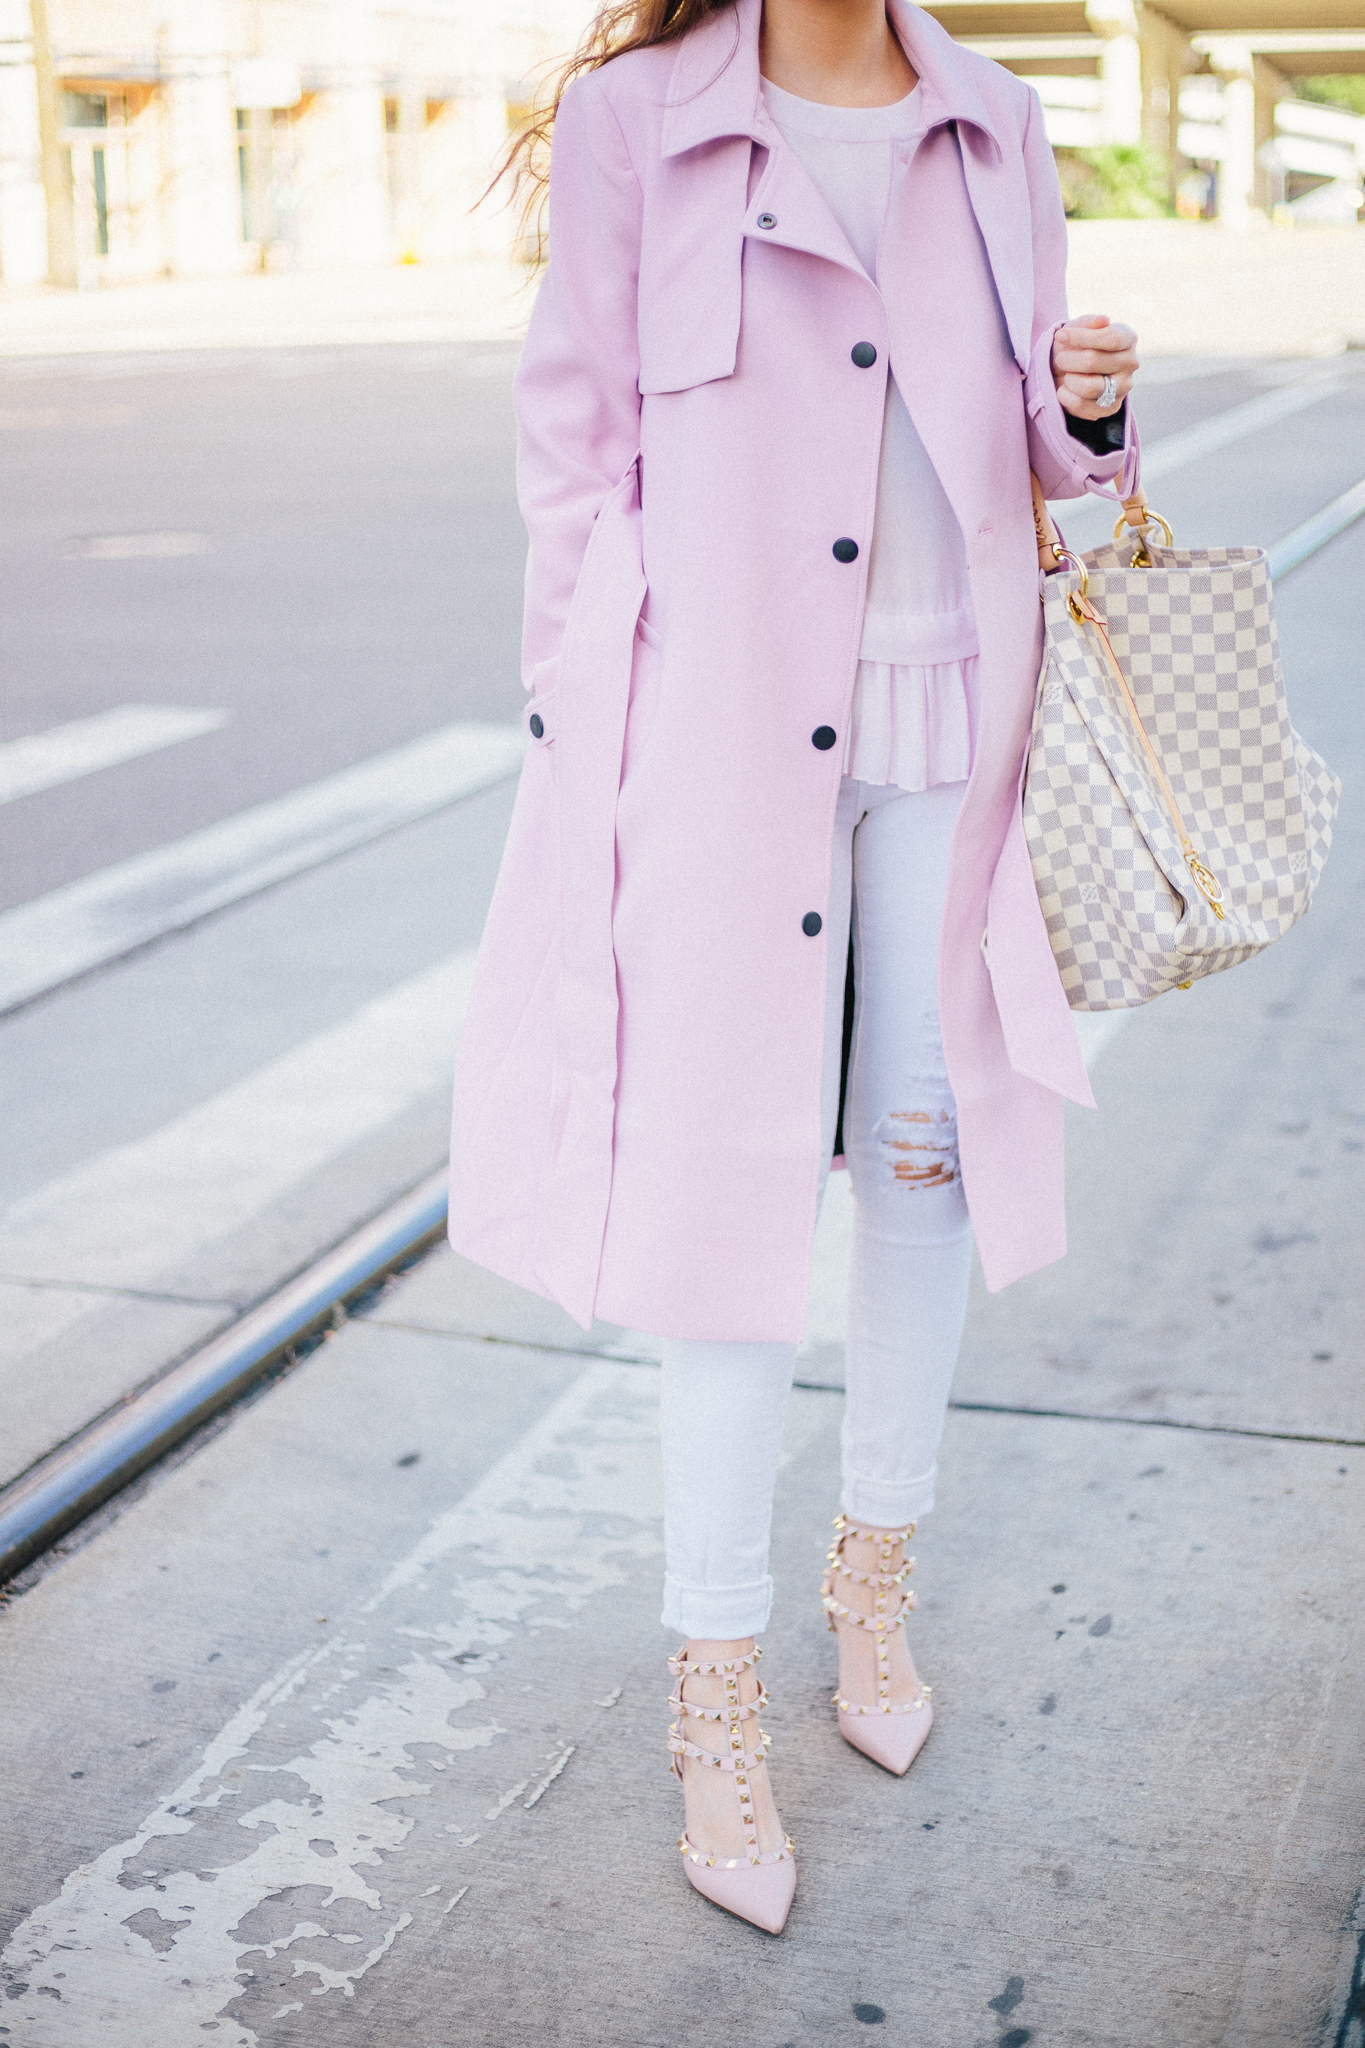 cute winter outfits, best stores to shop for cute winter outfits, asos pink coat, louis vuitton artsy, louis vuitton artsy damier azur, valentino rockstud kitten heels, valentino rockstud heels pink